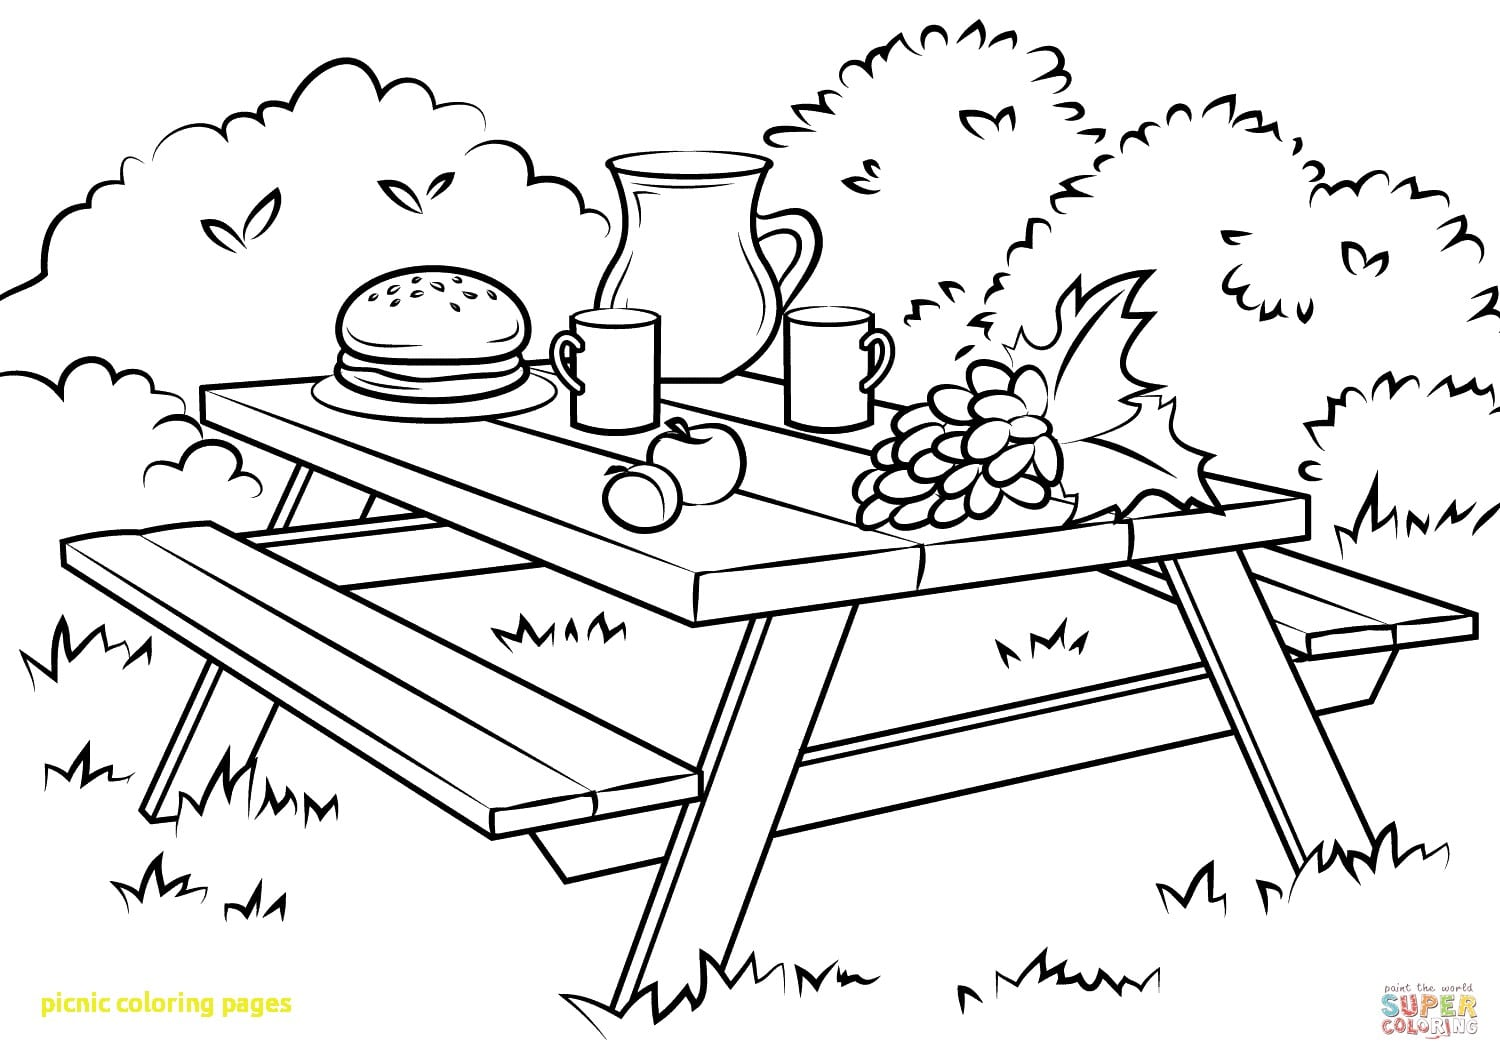 Picnic Coloring Pages With Table Page Of In 1